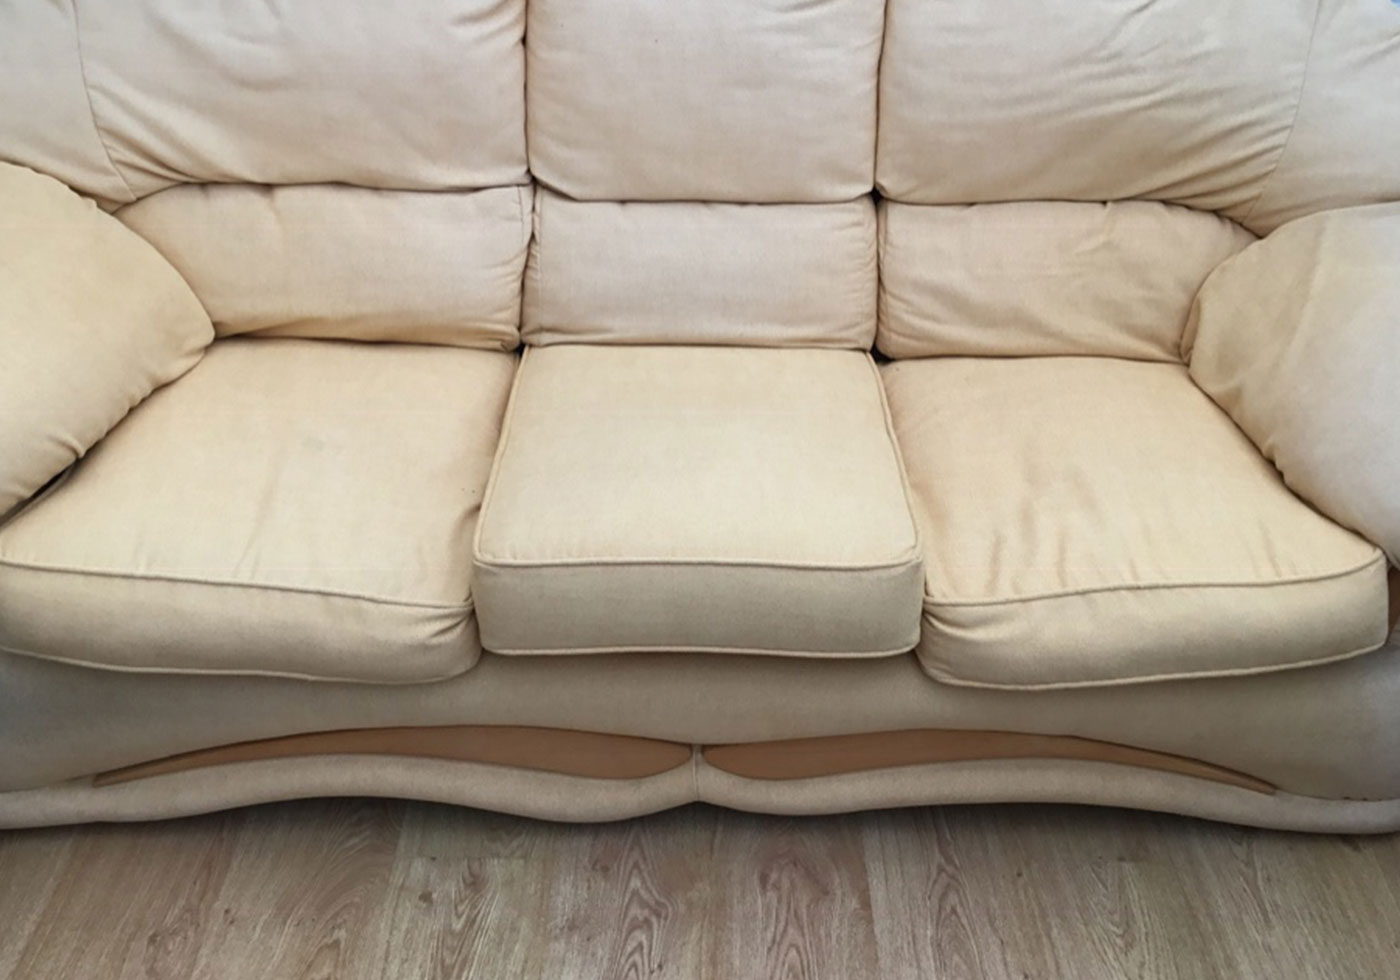 sofa cushion worn out and sagging